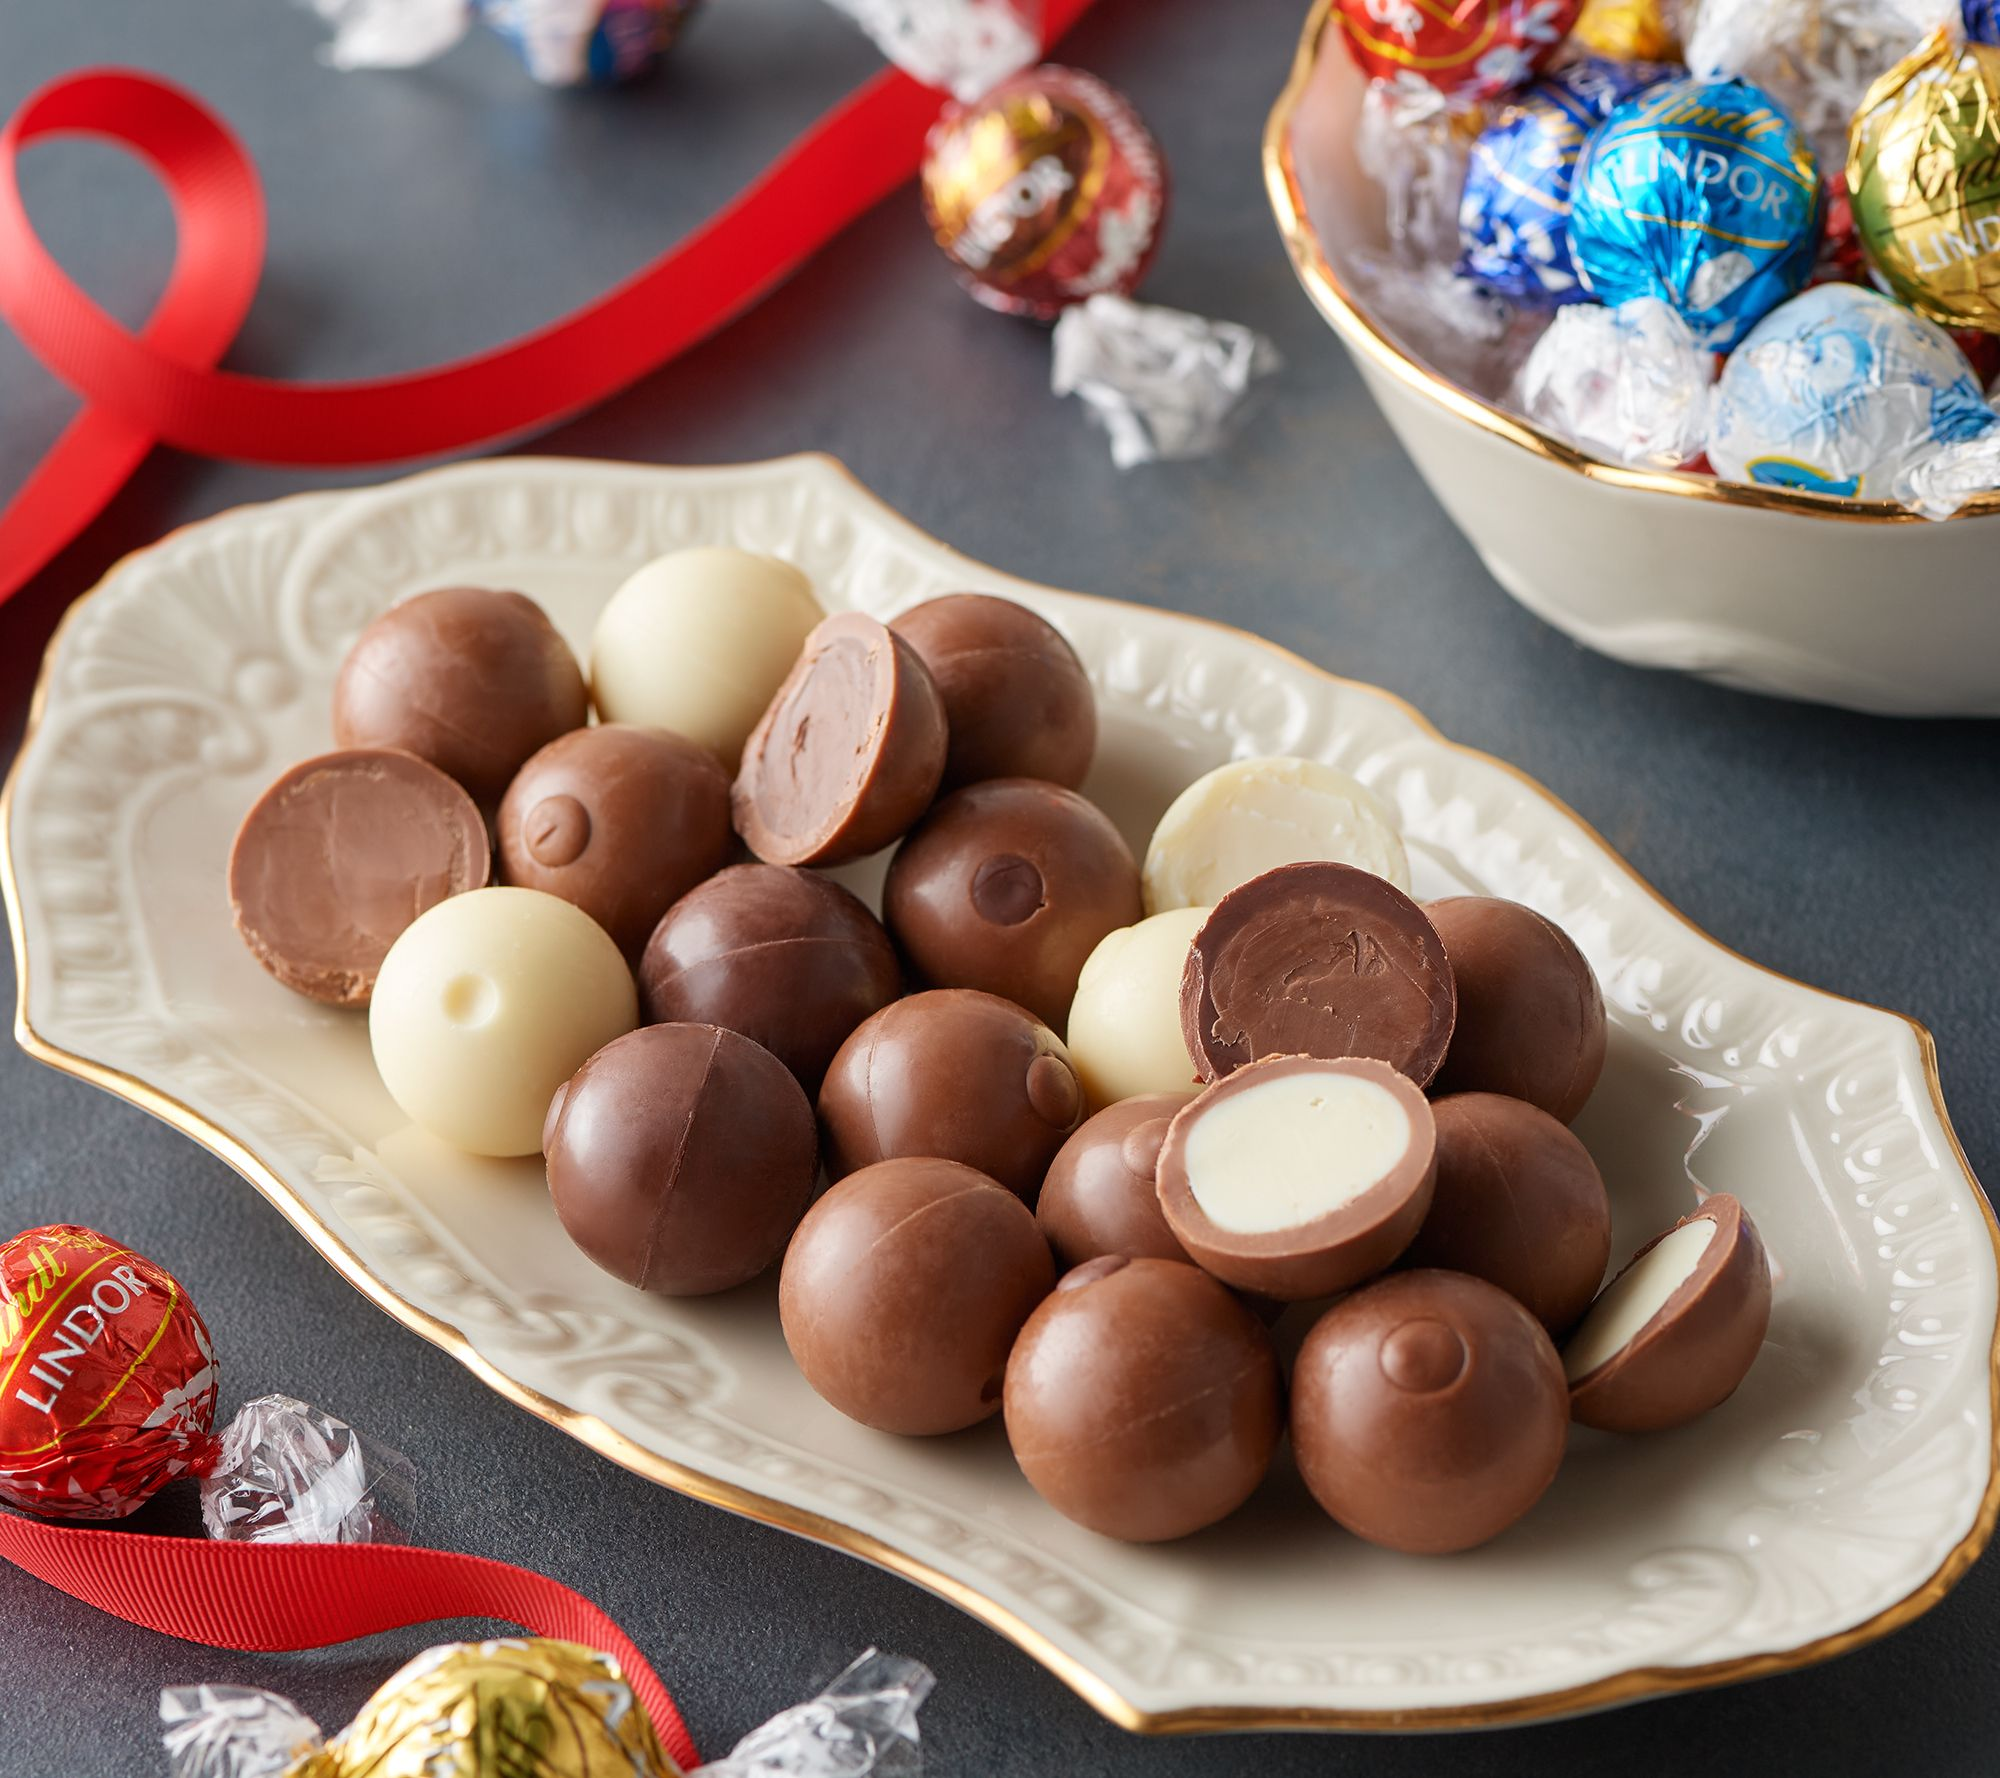 SH 11/8 Lindt 150-Pc Lindor Chocolate Truffles in Gift Box